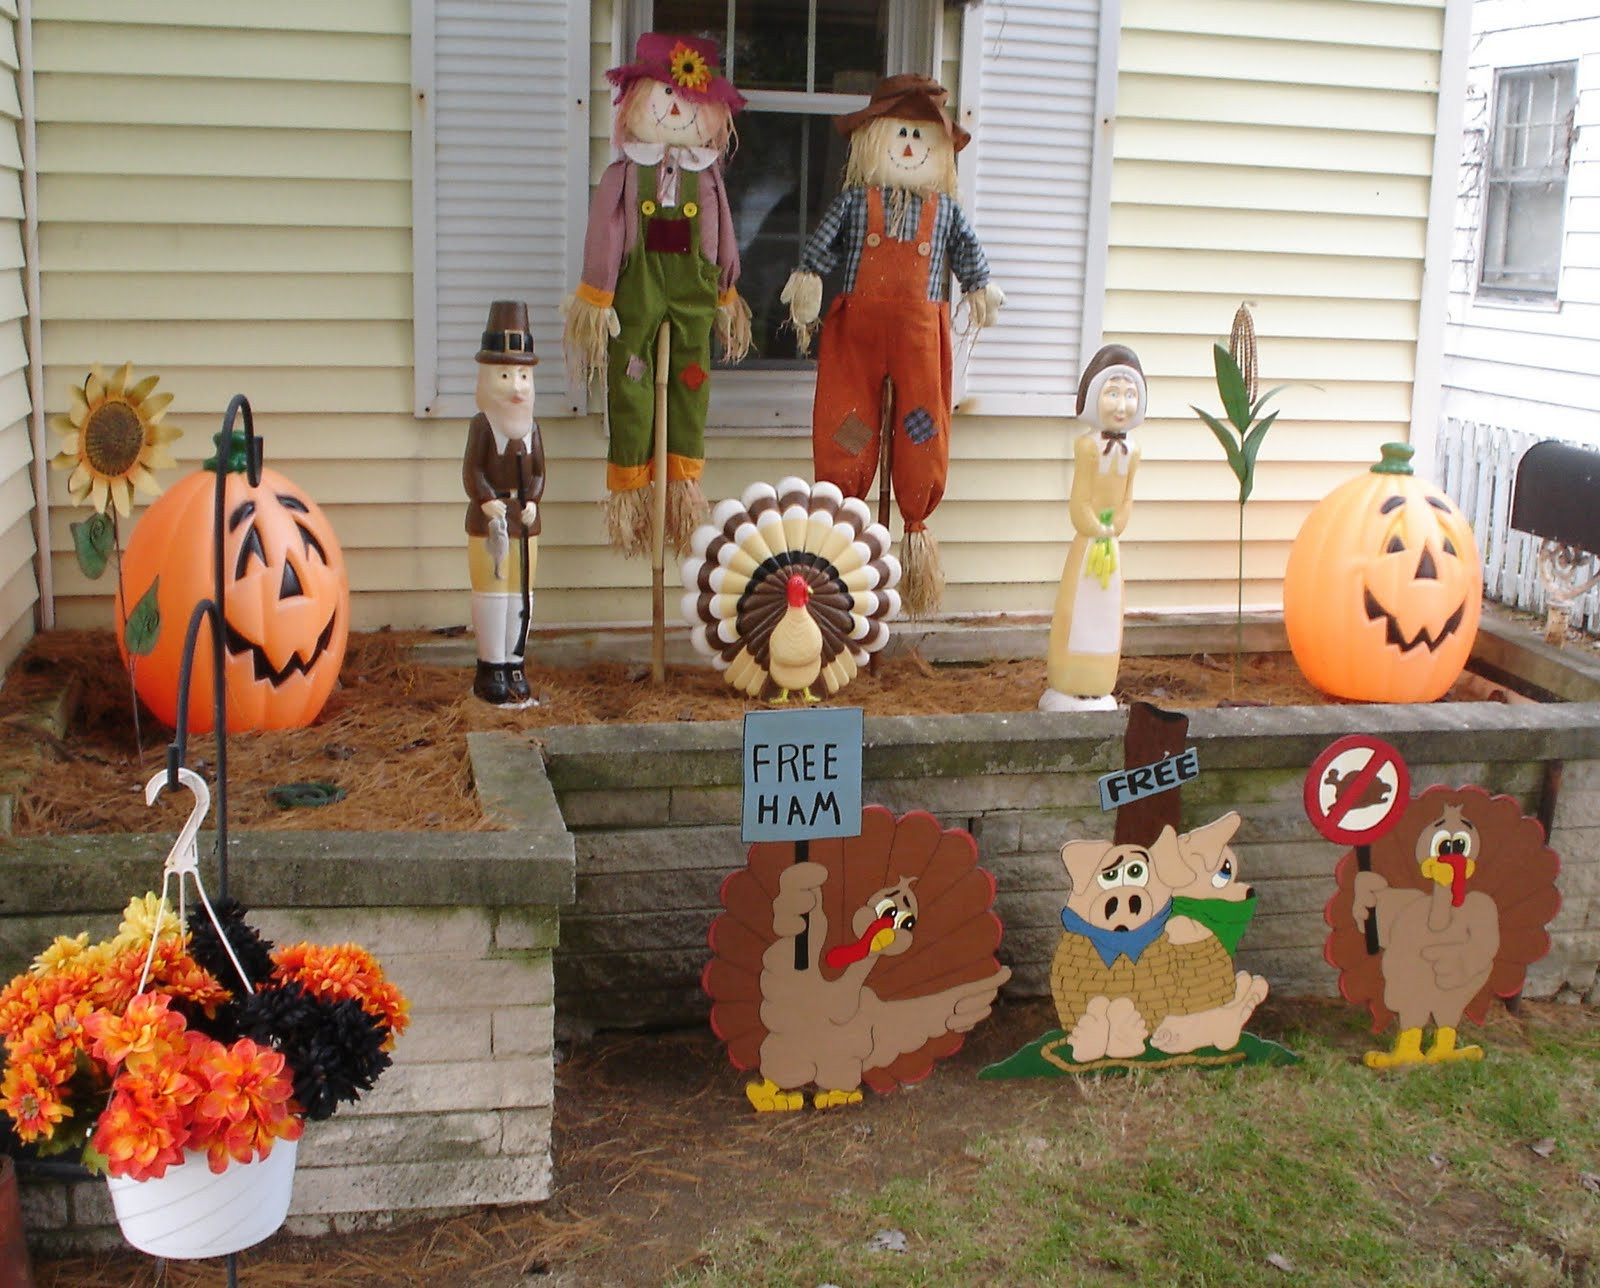 Thanksgiving Outdoor Decorations  The TSGS Cruiser 11 22 09 11 29 09